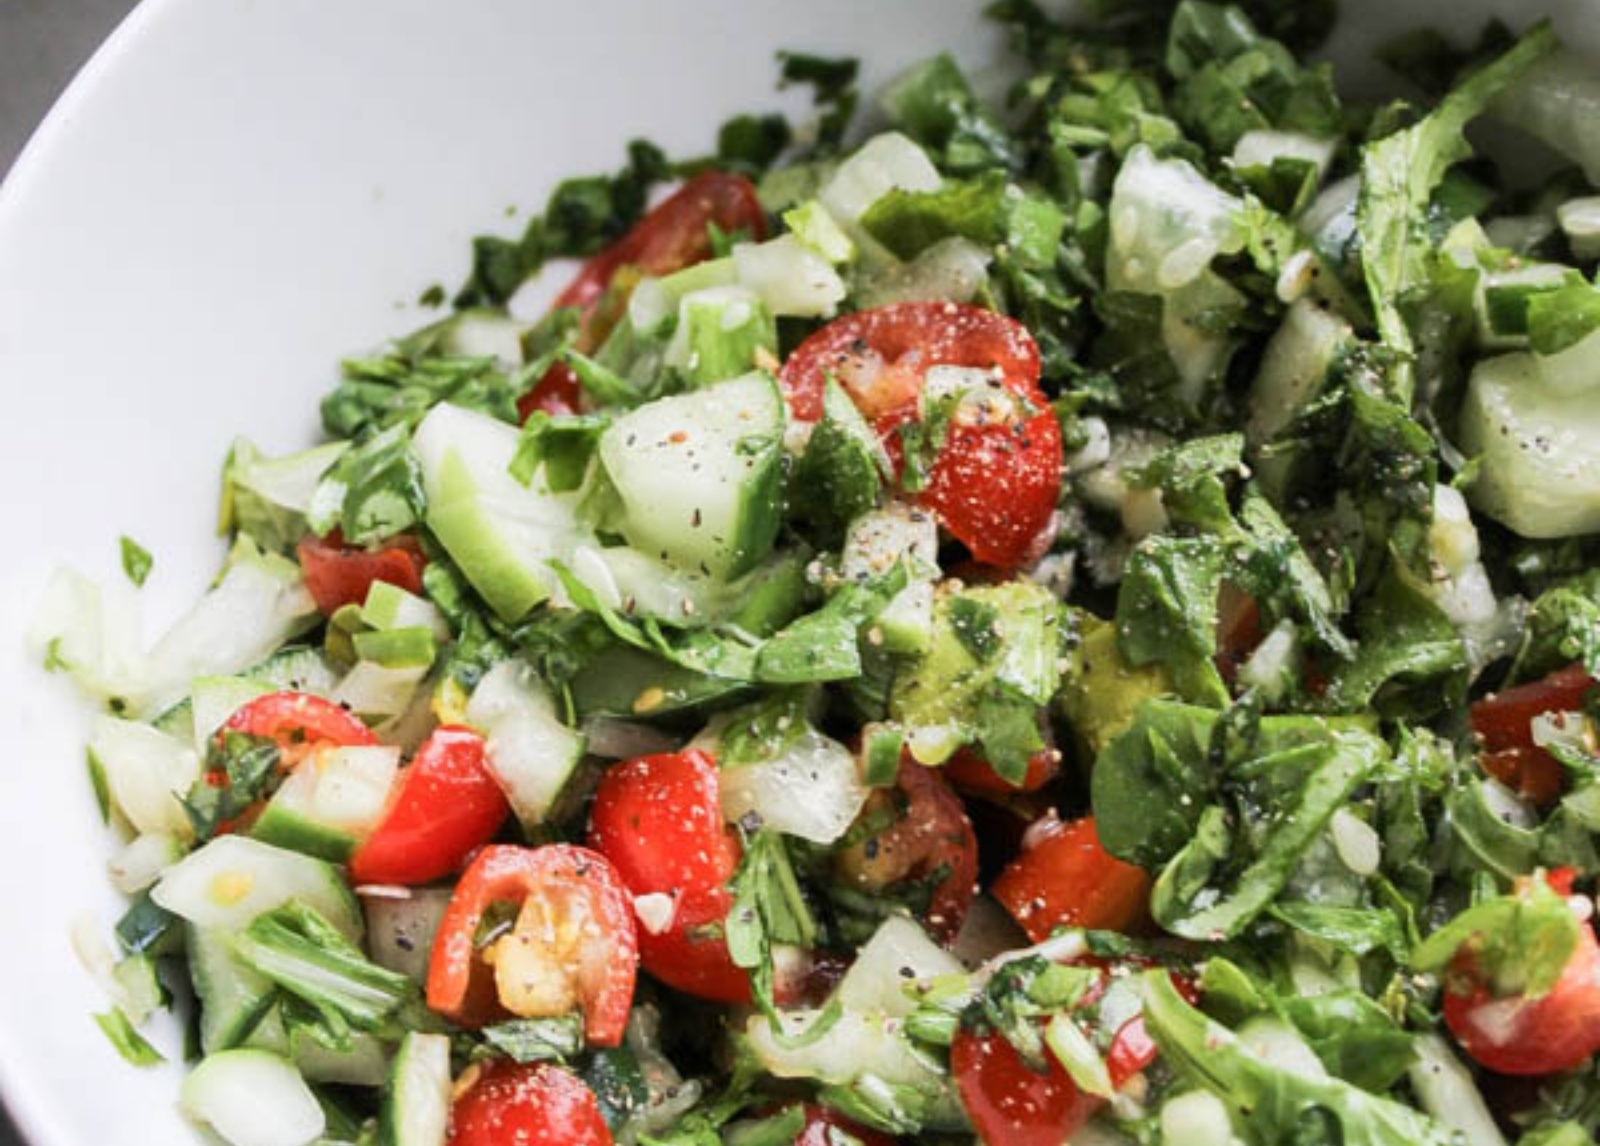 Cucumber Tomato Salad with Creamy Garlic Dressing